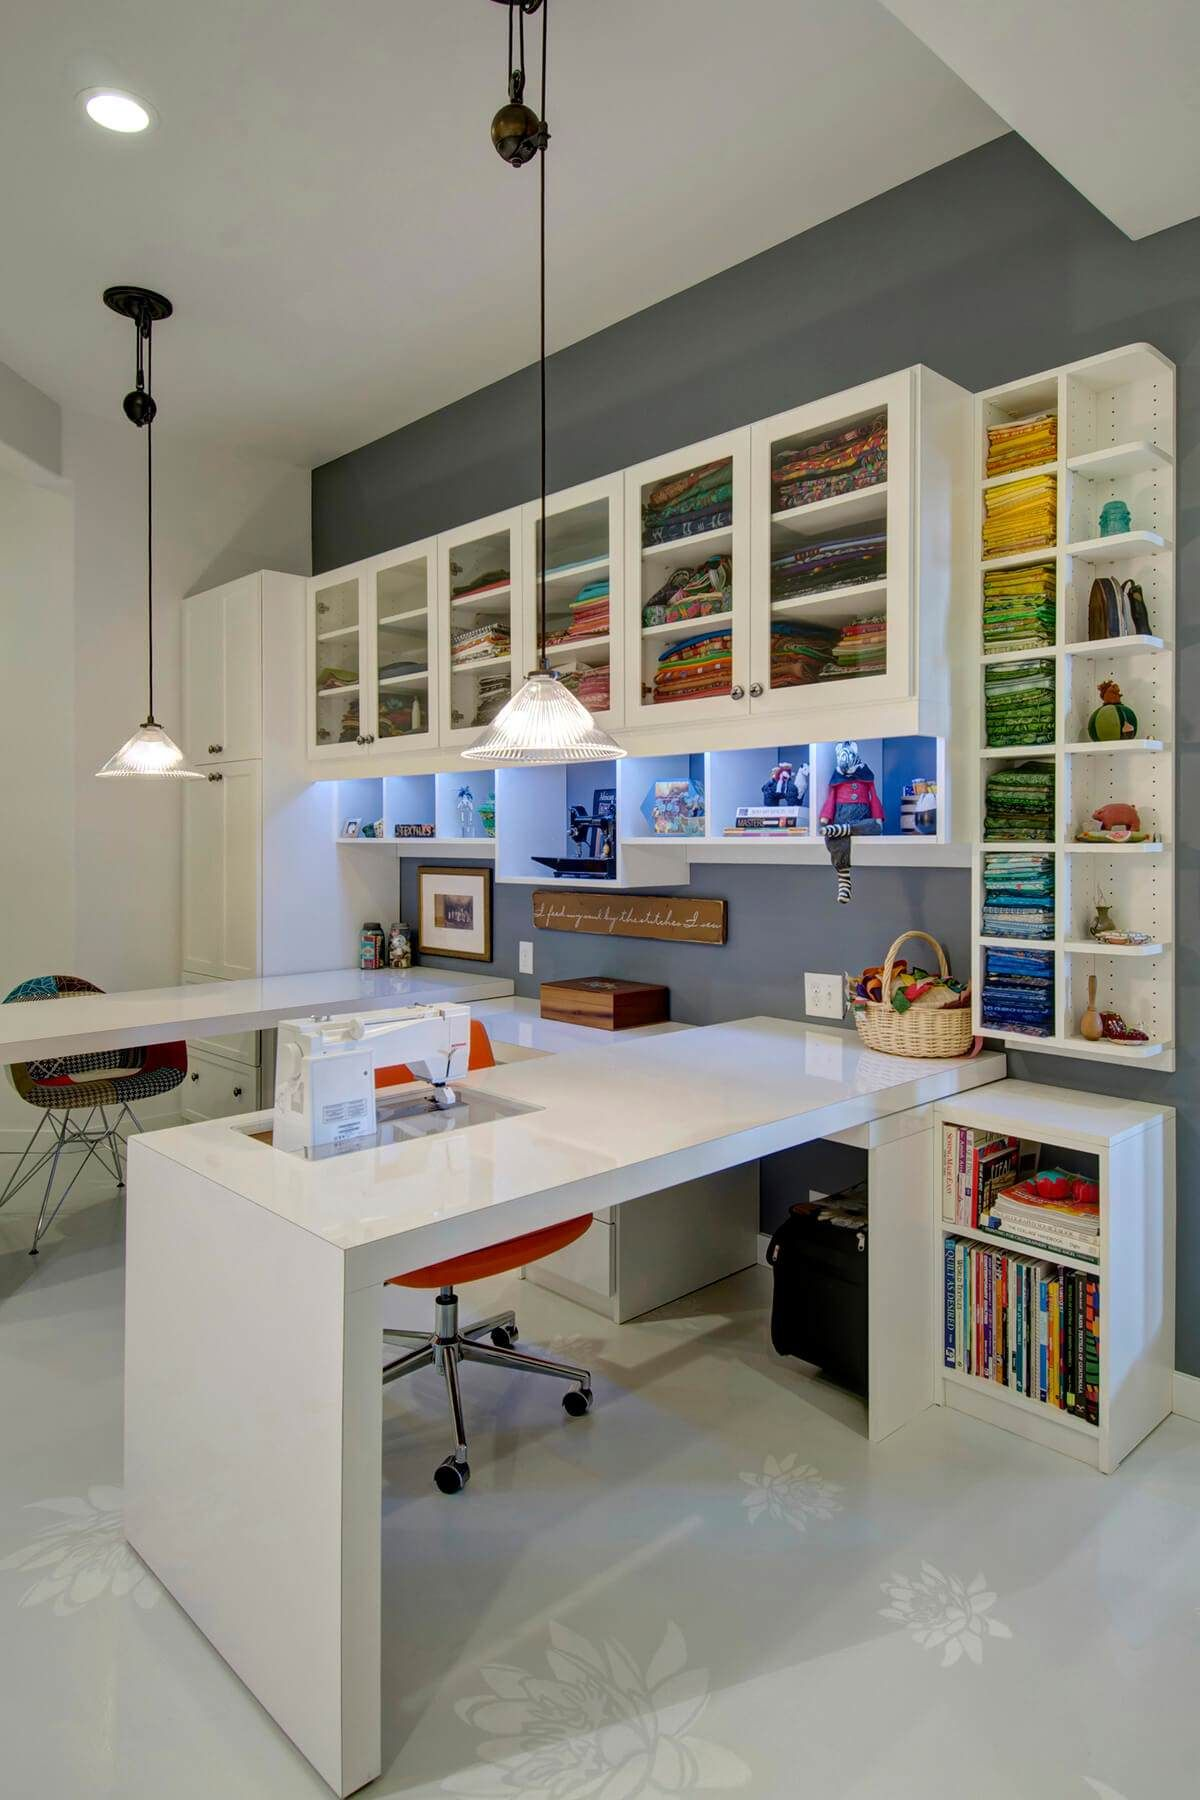 23 craft room design ideas creative rooms in 2018 for Home craft business ideas